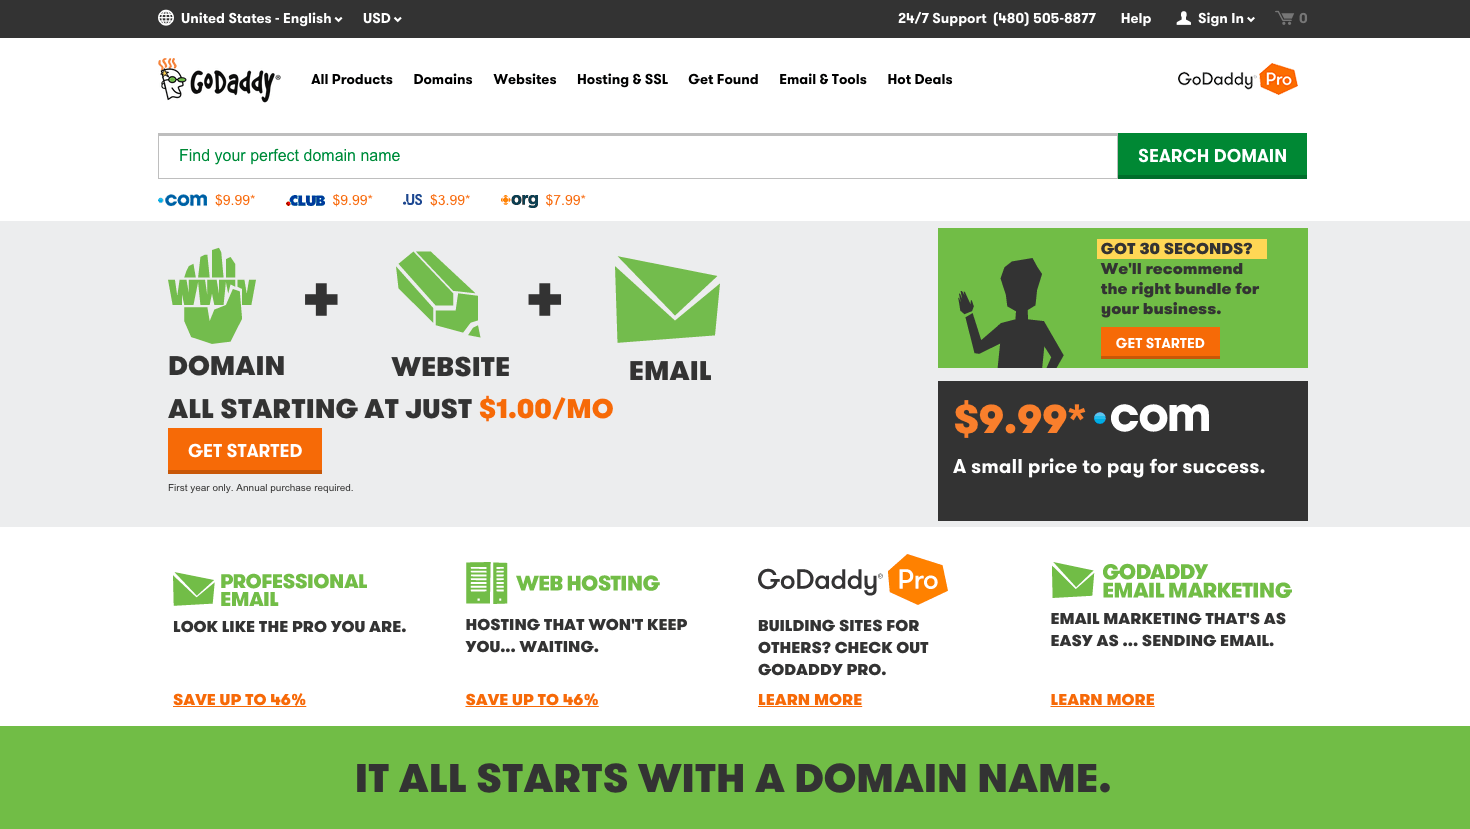 Godaddy website builder reviews tbc for Godaddy ecommerce templates